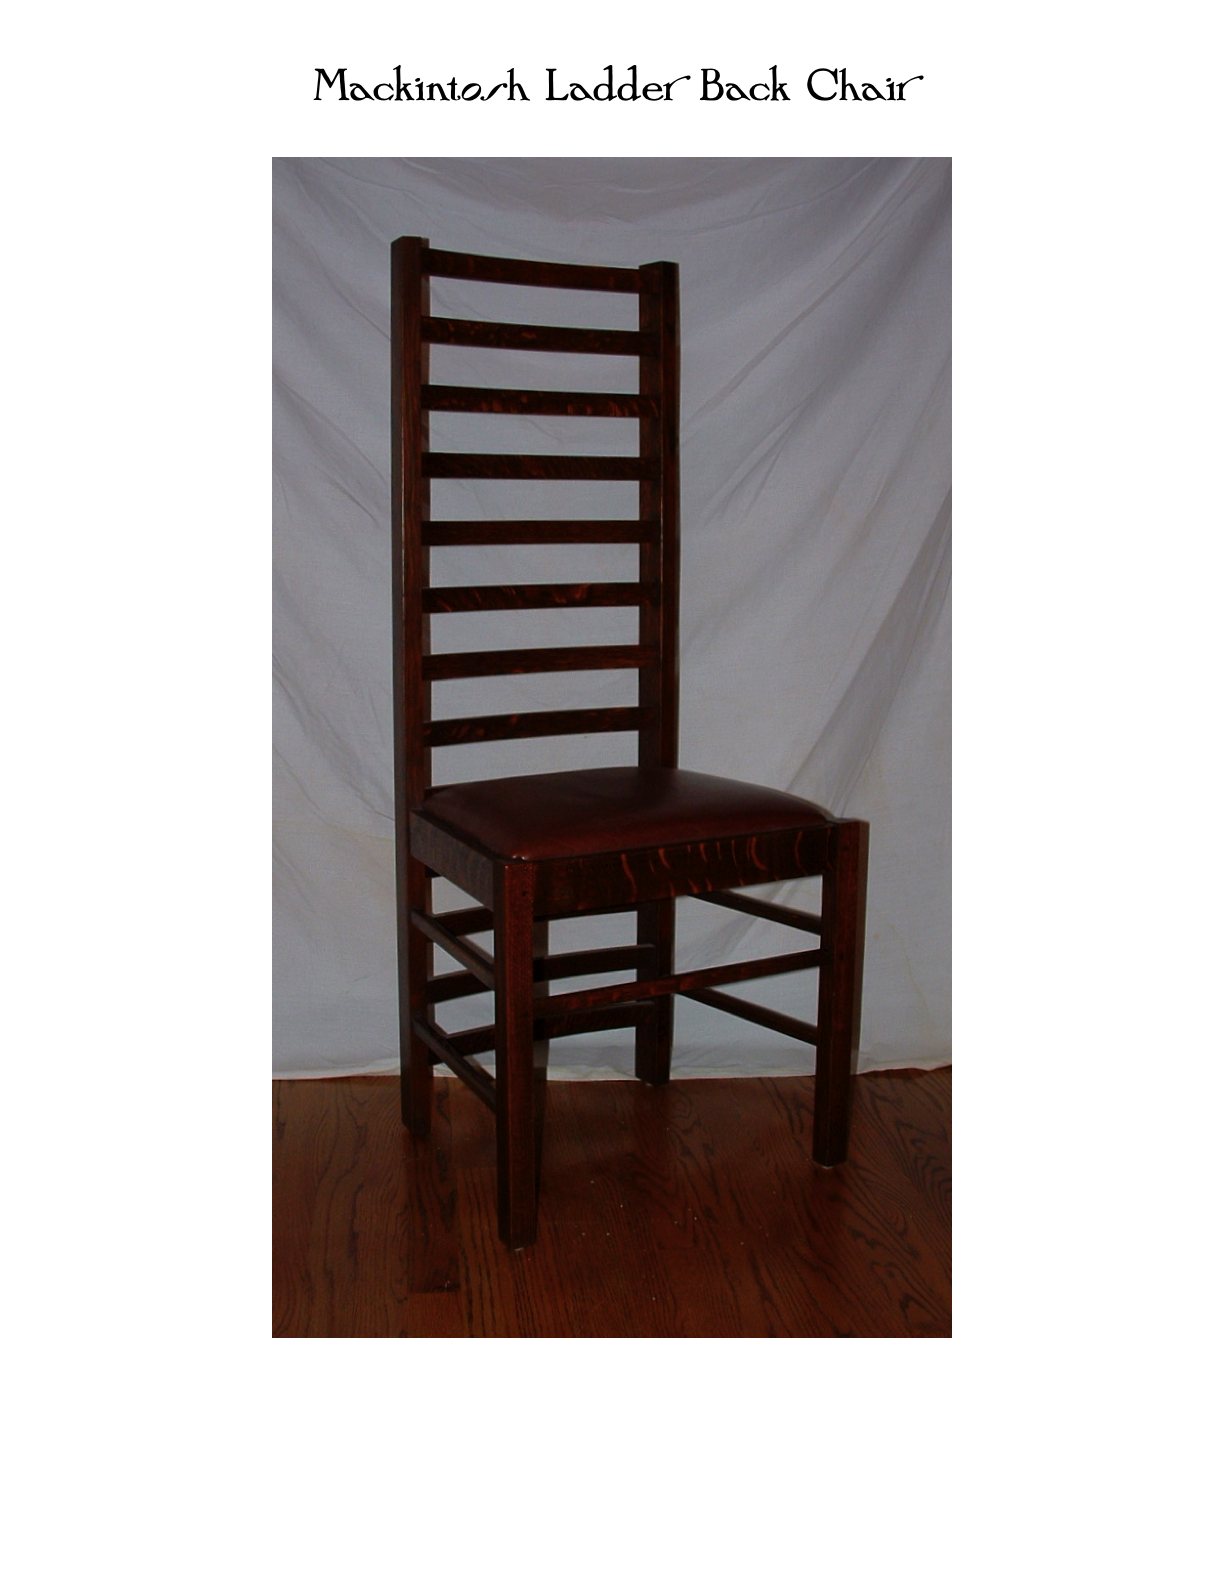 Mackintosh Ladder Back Chair